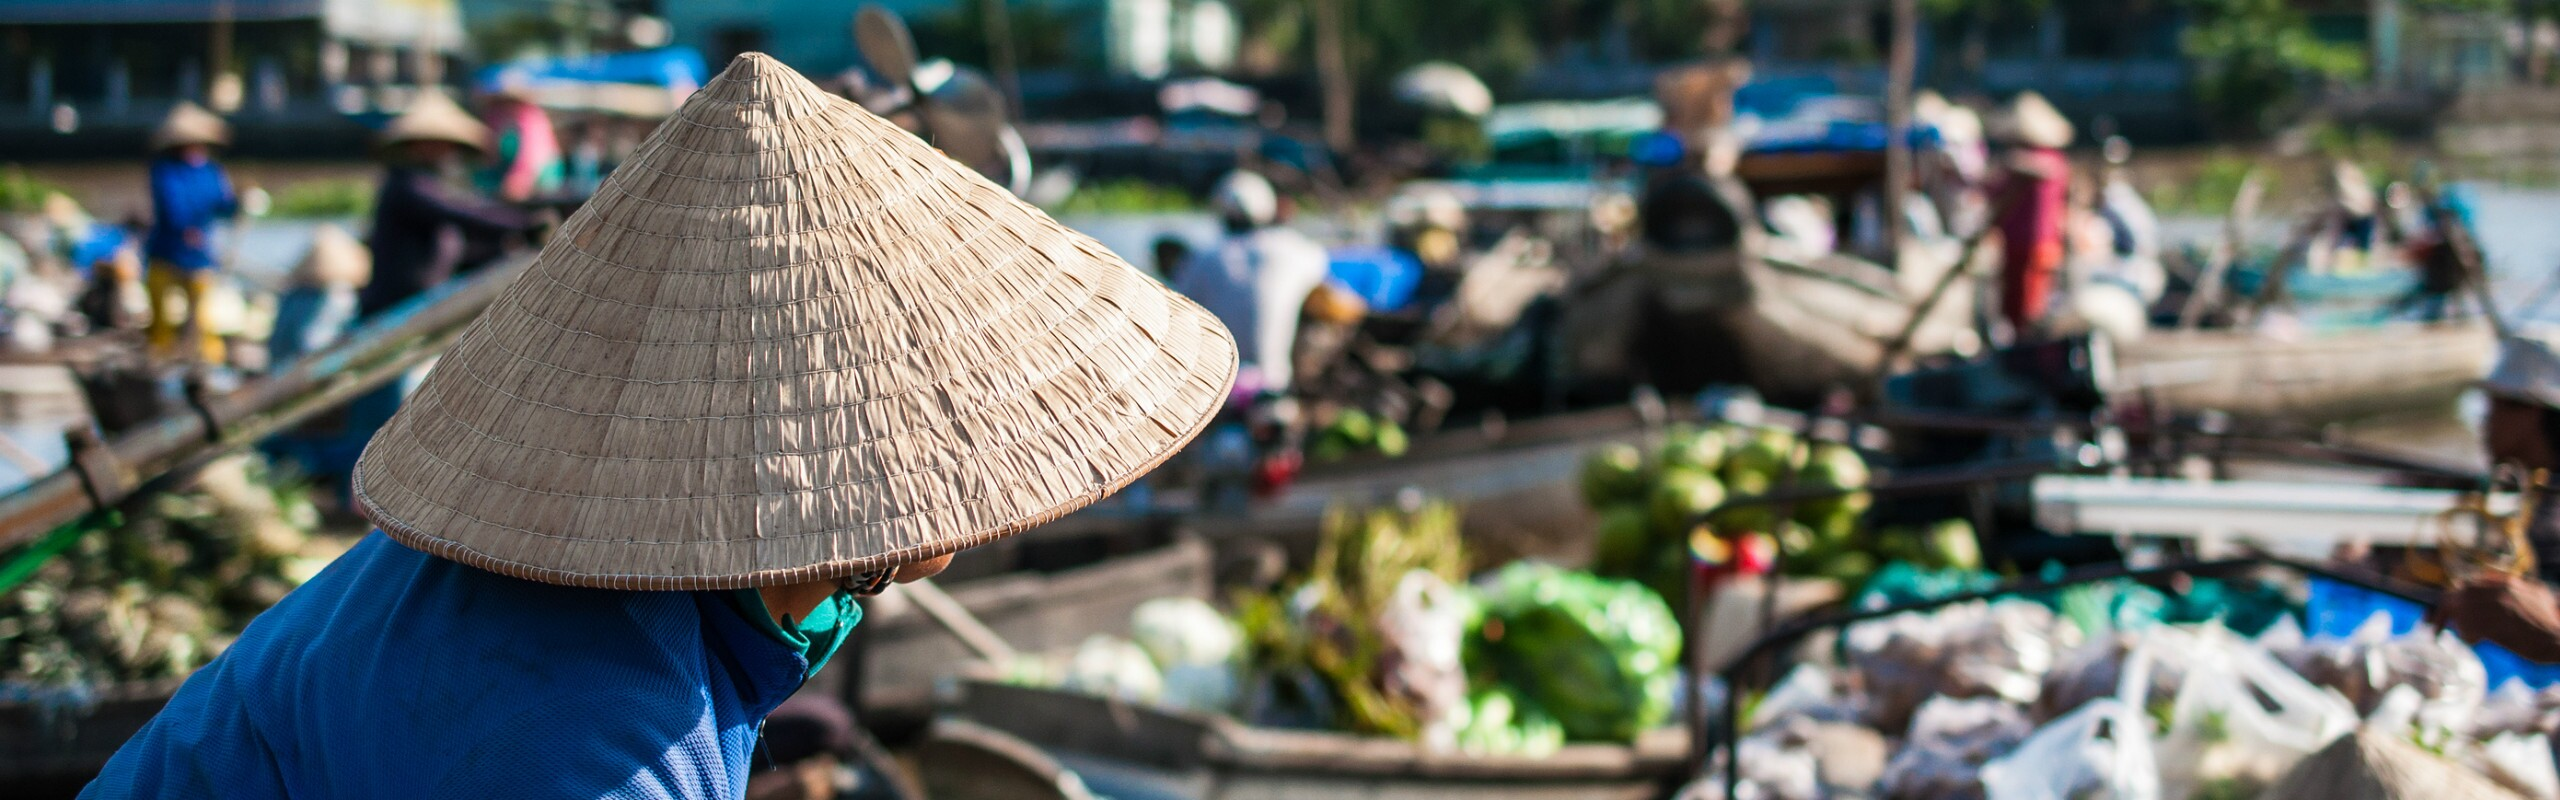 Top Shopping Places in Vietnam - Best Markets to Visit